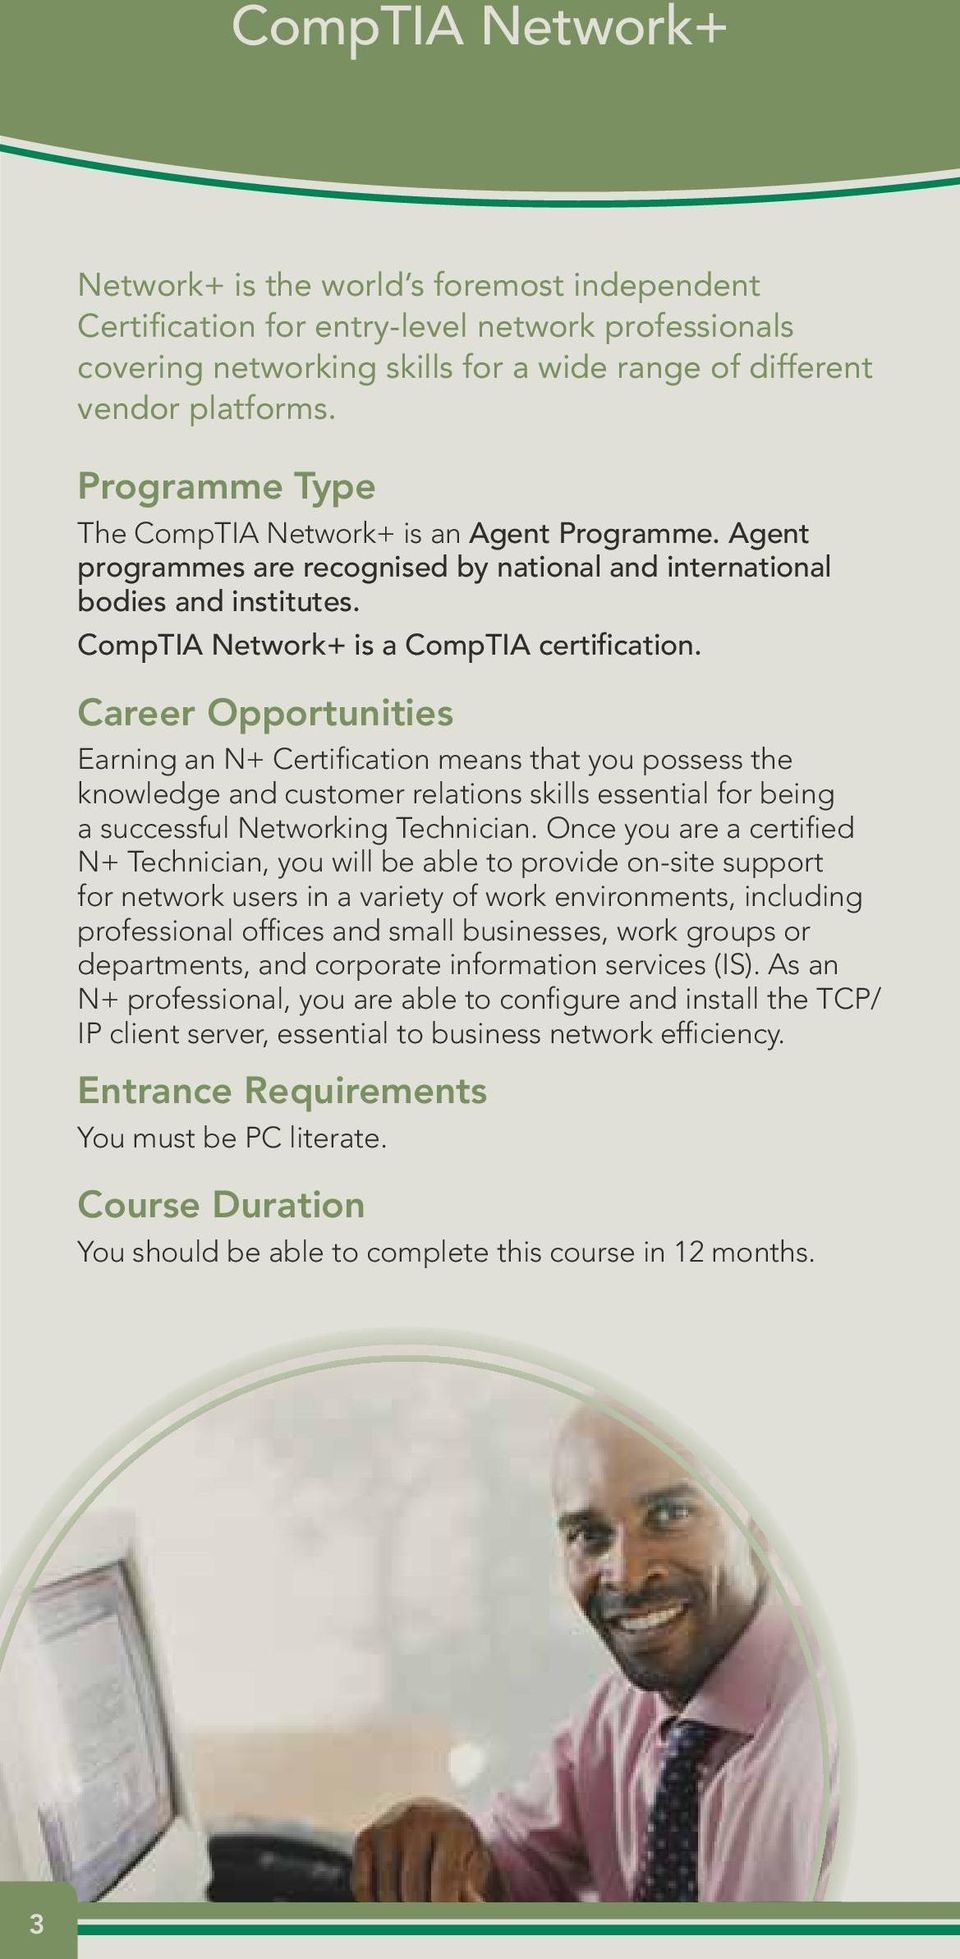 Career Opportunities Earning an N+ Certification means that you possess the knowledge and customer relations skills essential for being a successful Networking Technician.